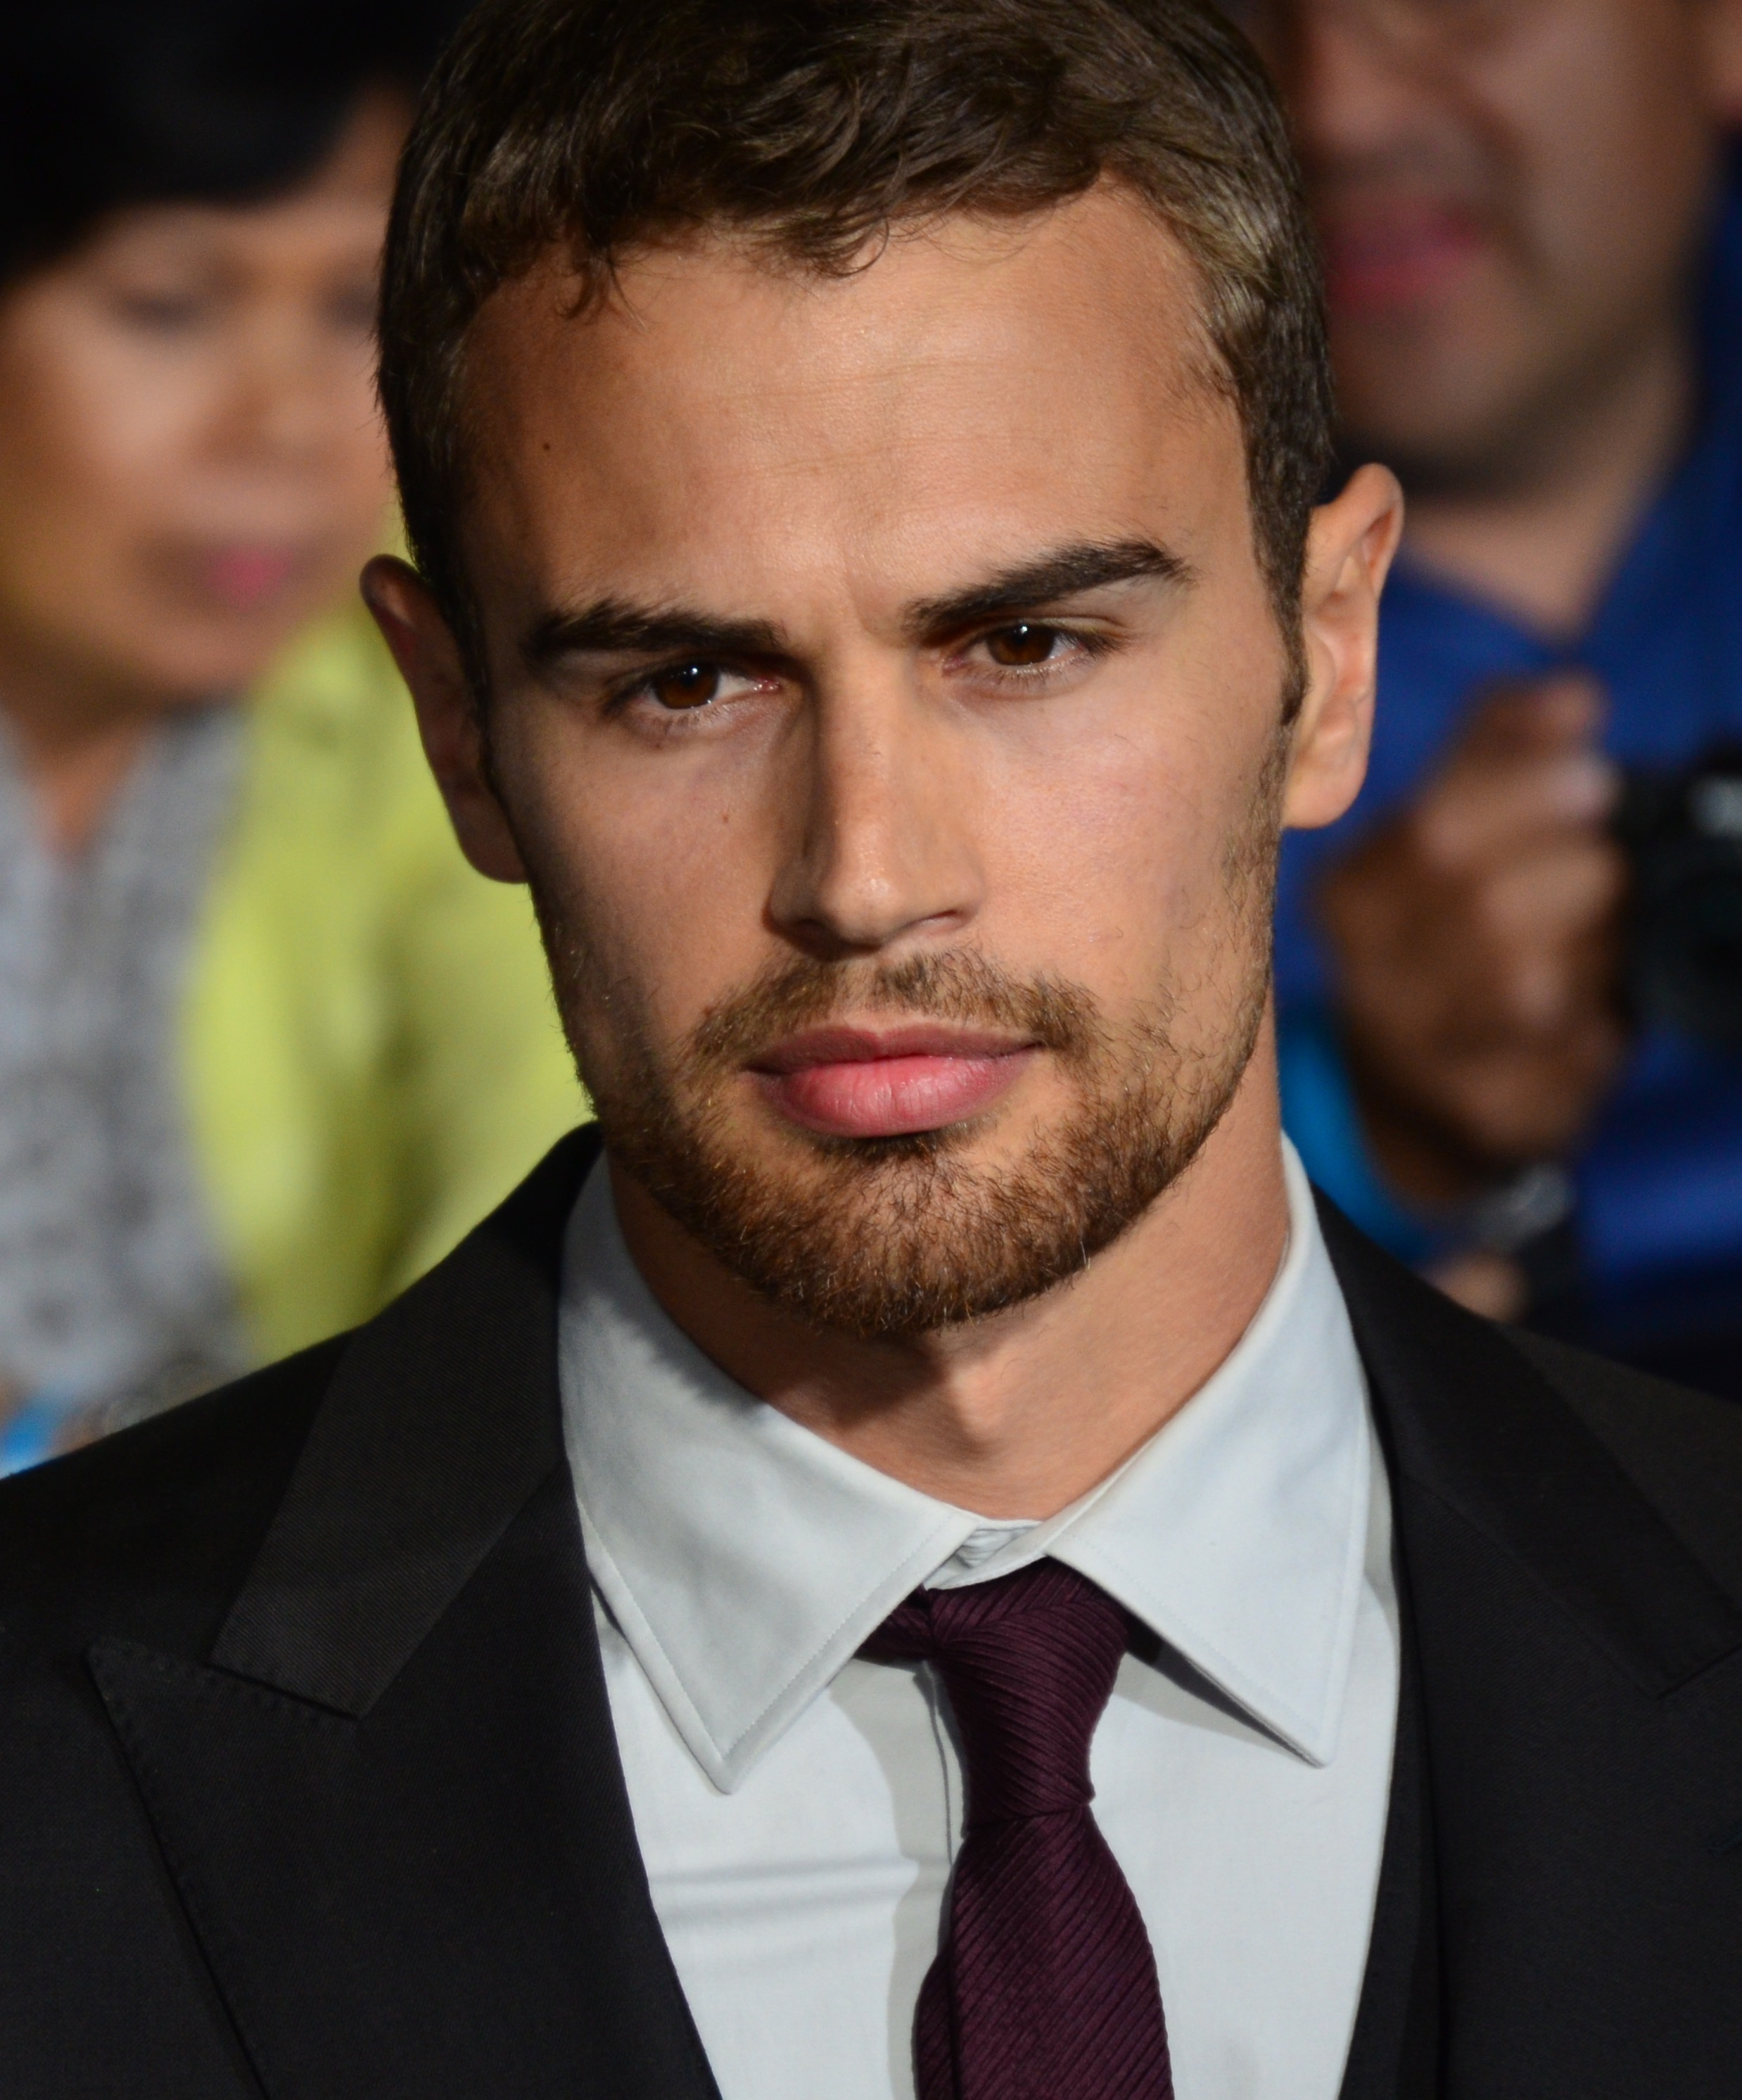 The 33-year old son of father Philip Taptiklis and mother Jane Taptiklis Theo James in 2018 photo. Theo James earned a  million dollar salary - leaving the net worth at 2 million in 2018